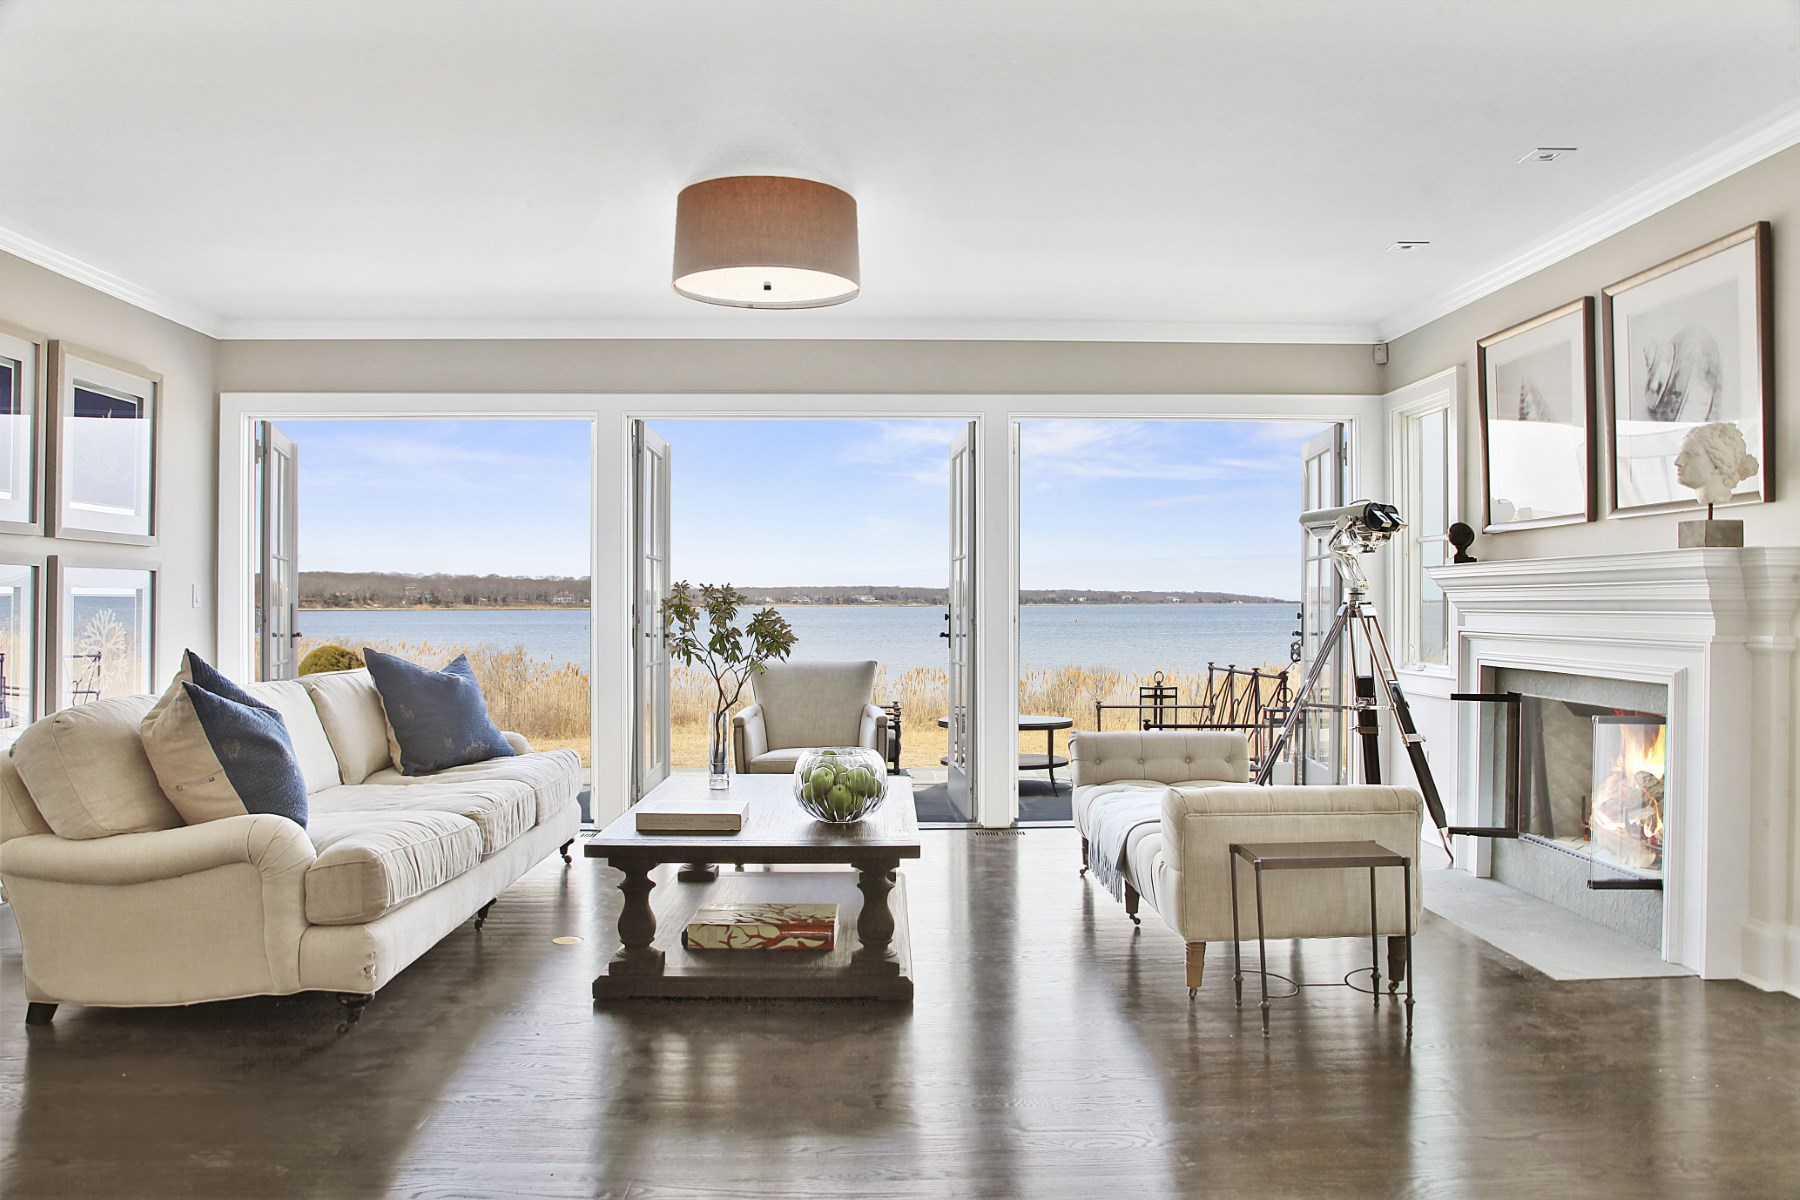 Single Family Home for Rent at Rental On The Harbor, Private Beach 11 Breeze Hill East Hampton, New York 11937 United States